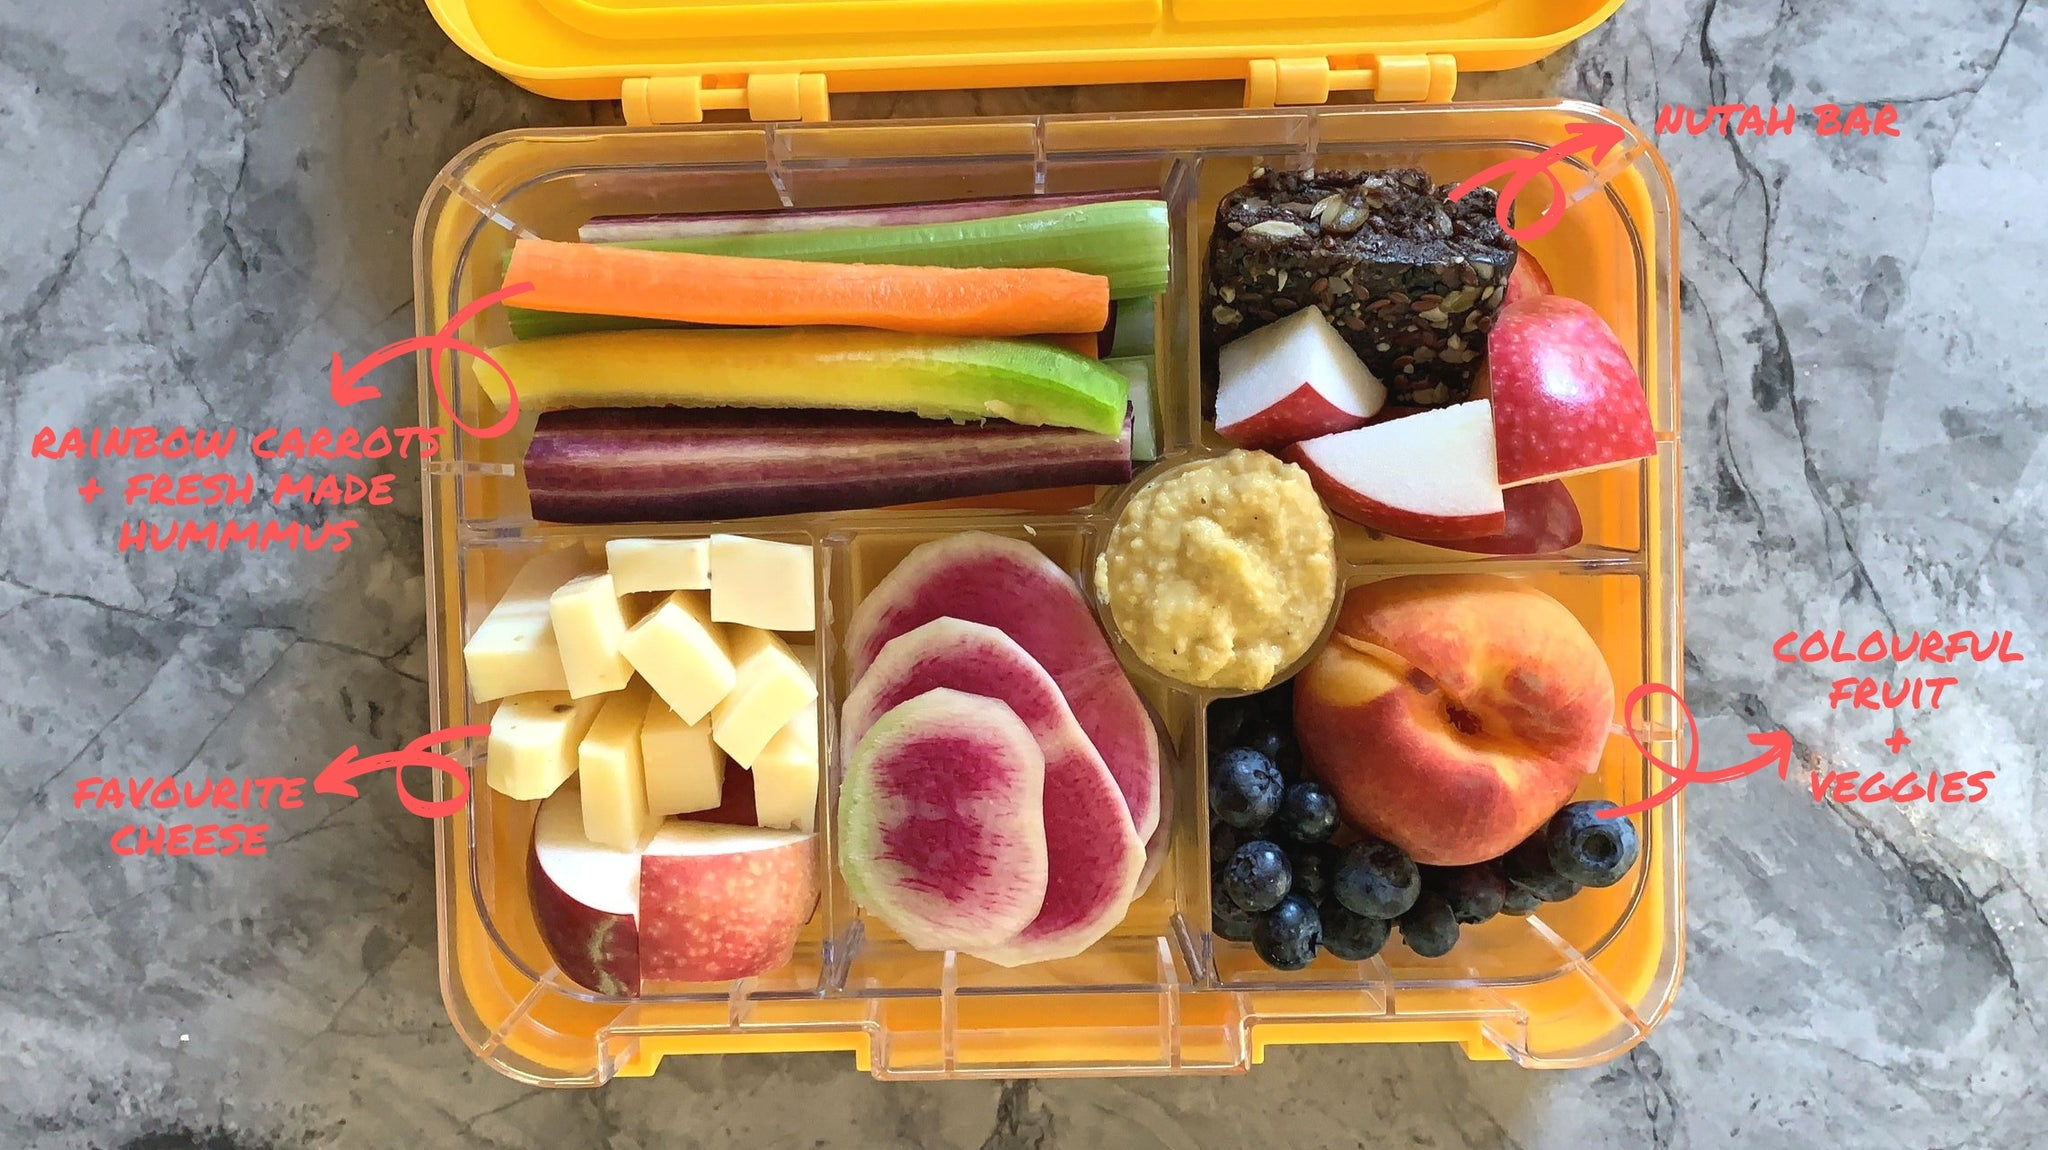 Fruit and vegetable bento box lunch idea from Legacy Greens grocery store in downtown Kitchener